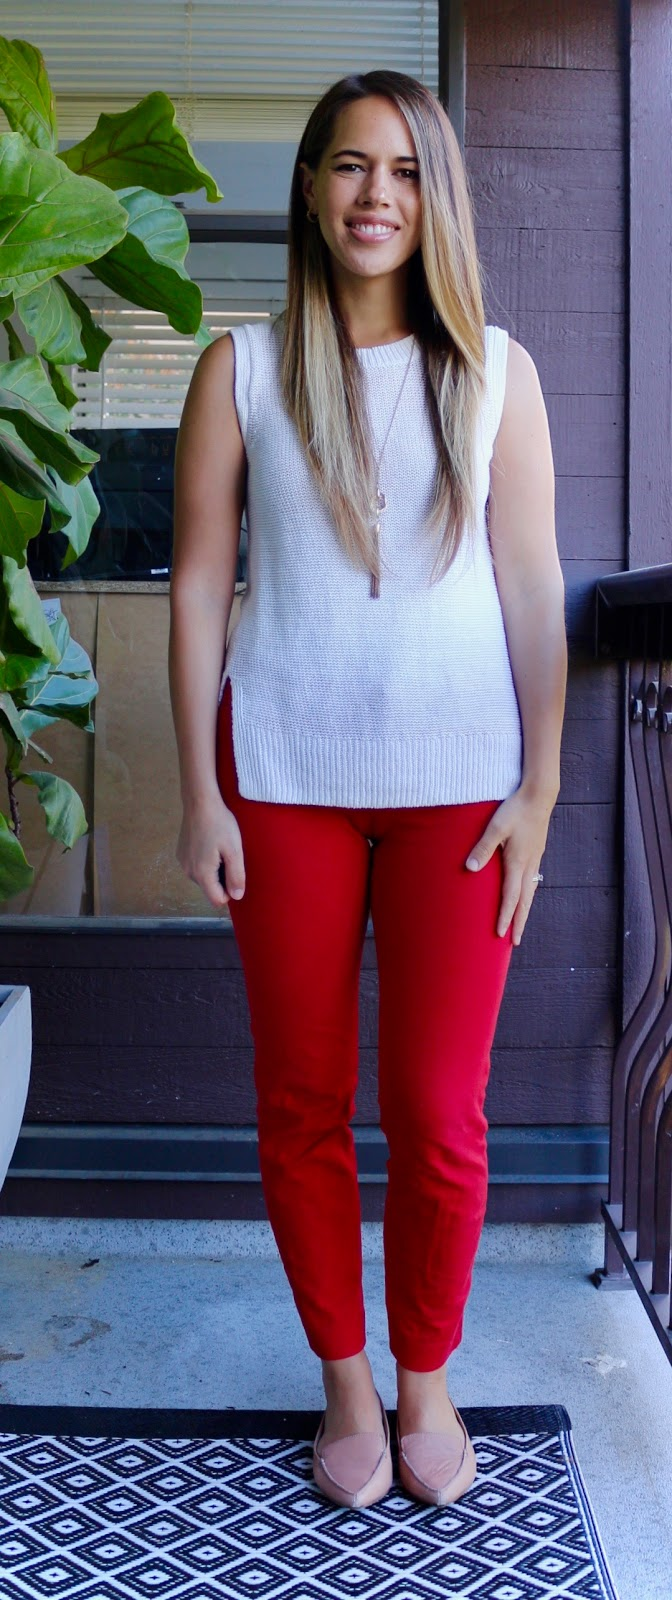 Jules in Flats - Sleeveless Knit Tunic with Red Pants